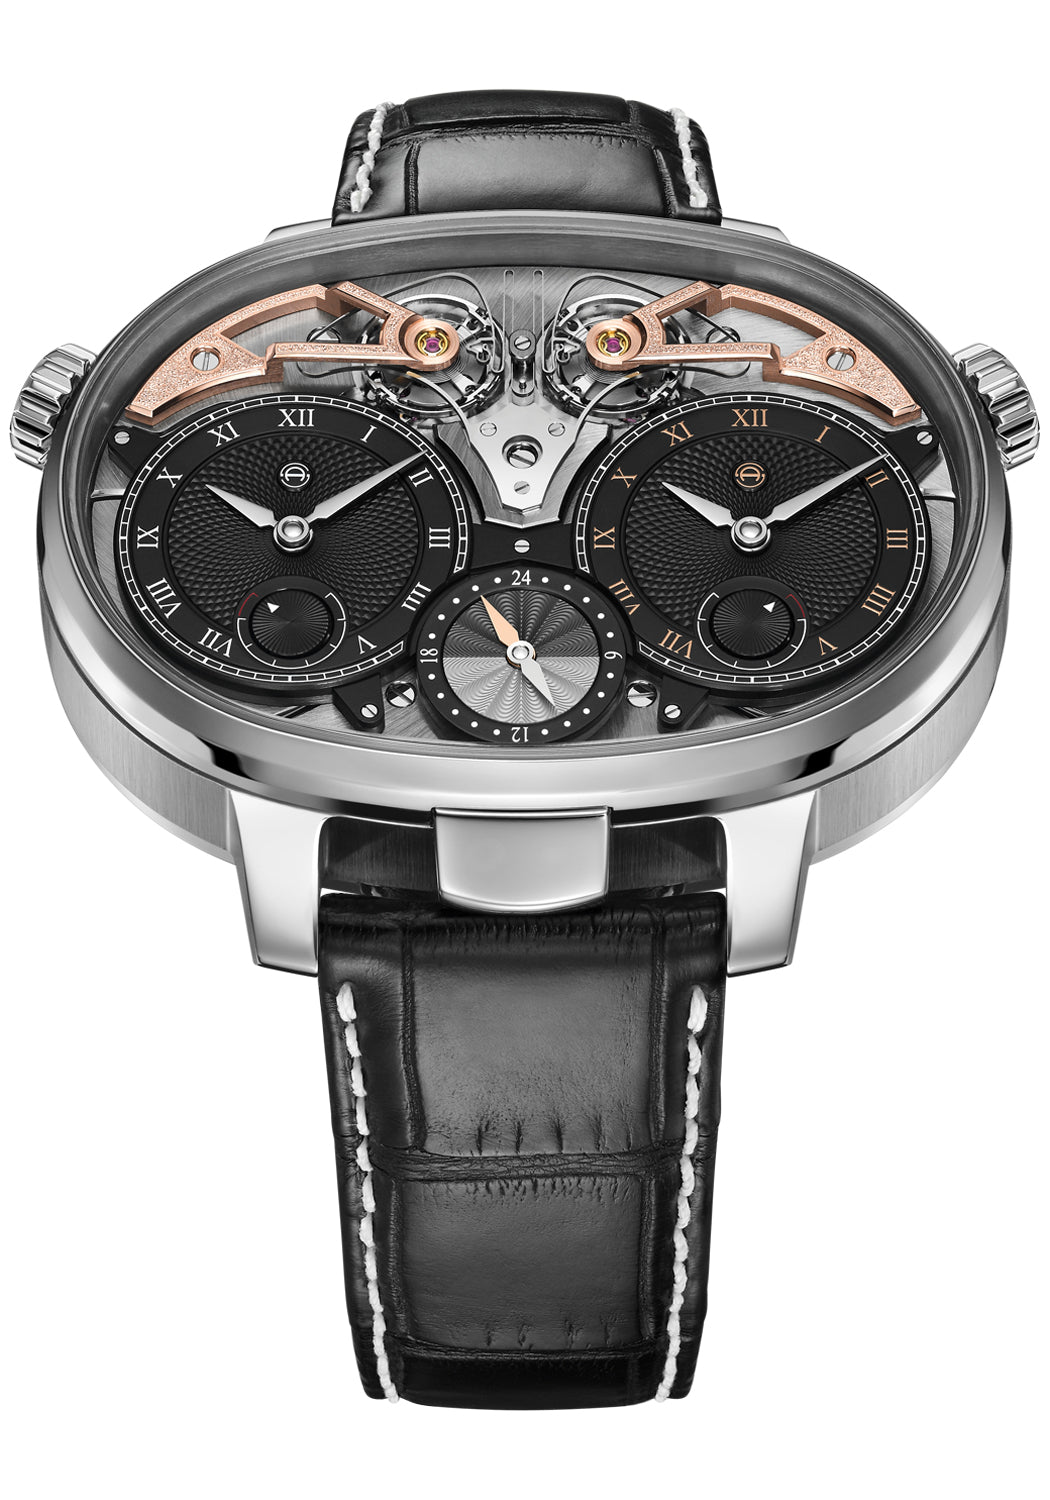 Armin Strom Dual Time Resonance Masterpiece 1